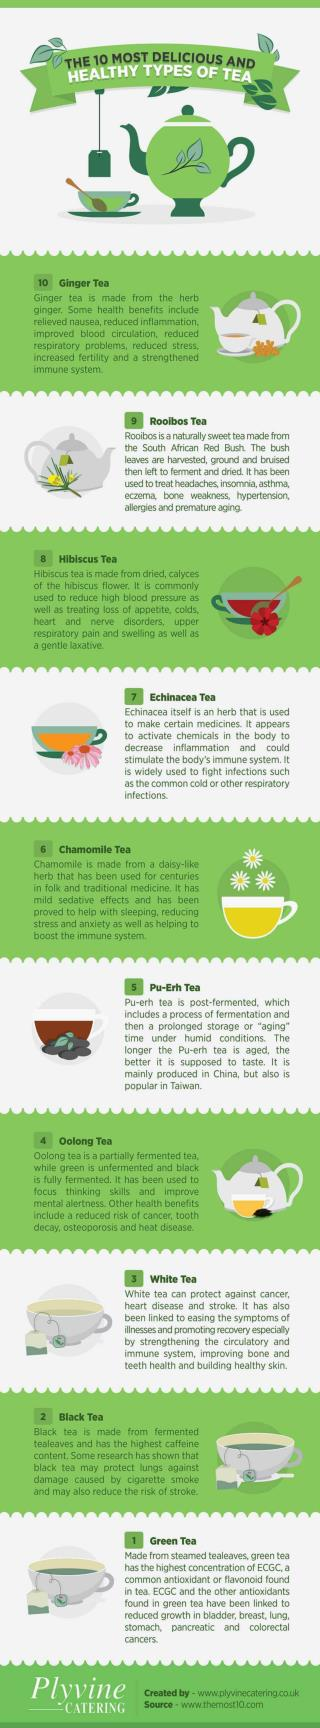 The 10 Most Delicious and Healthy Types of Tea